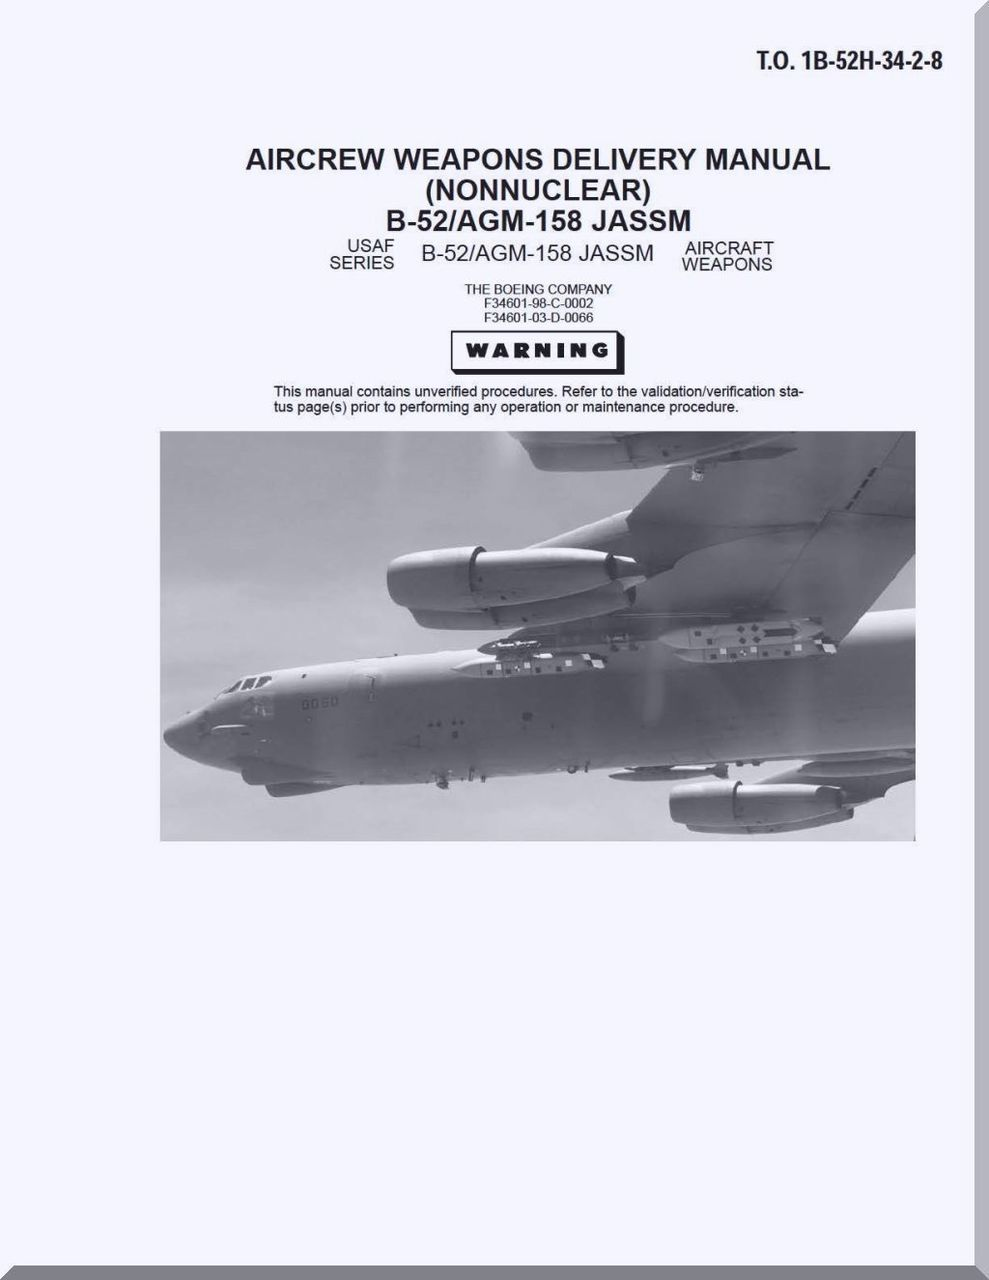 Boeing B-52 H Aircrew Weapon Delivery Manual ( NonNuclear ) - B-52 /  AGM-158 JASSM T.O. 1B-52H-34-2-8 - Aircraft Reports - Manuals Aircraft  Helicopter ...